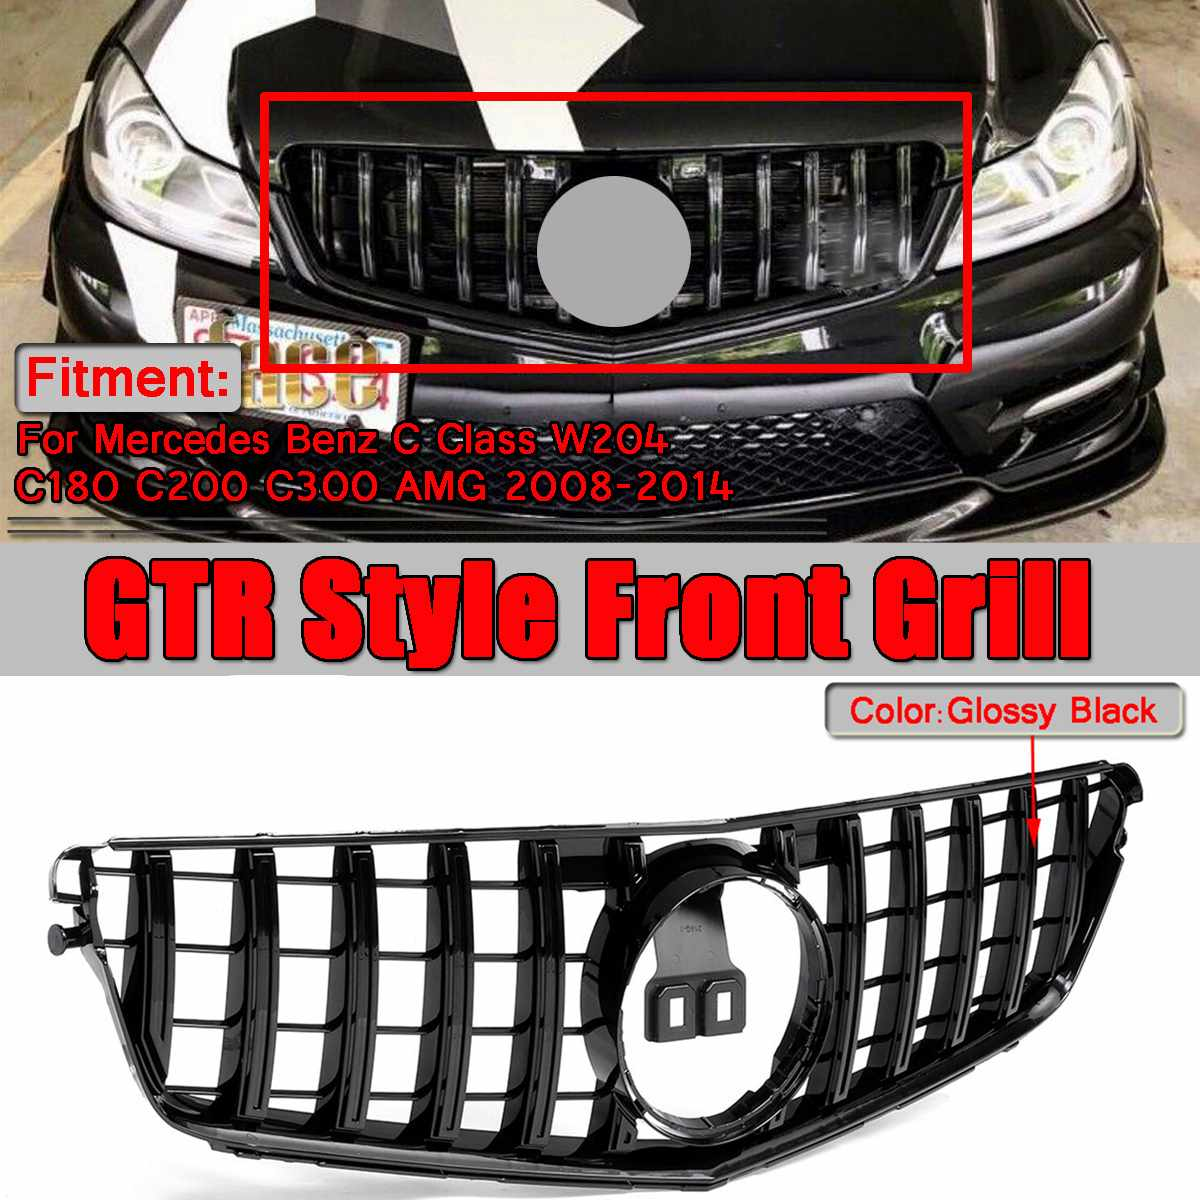 1x W204 GTR GT Style Car Front Bumper Upper Racing Grille Grill For Mercedes For Benz W204 C180 C200 C300 for AMG 2008-20141x W204 GTR GT Style Car Front Bumper Upper Racing Grille Grill For Mercedes For Benz W204 C180 C200 C300 for AMG 2008-2014